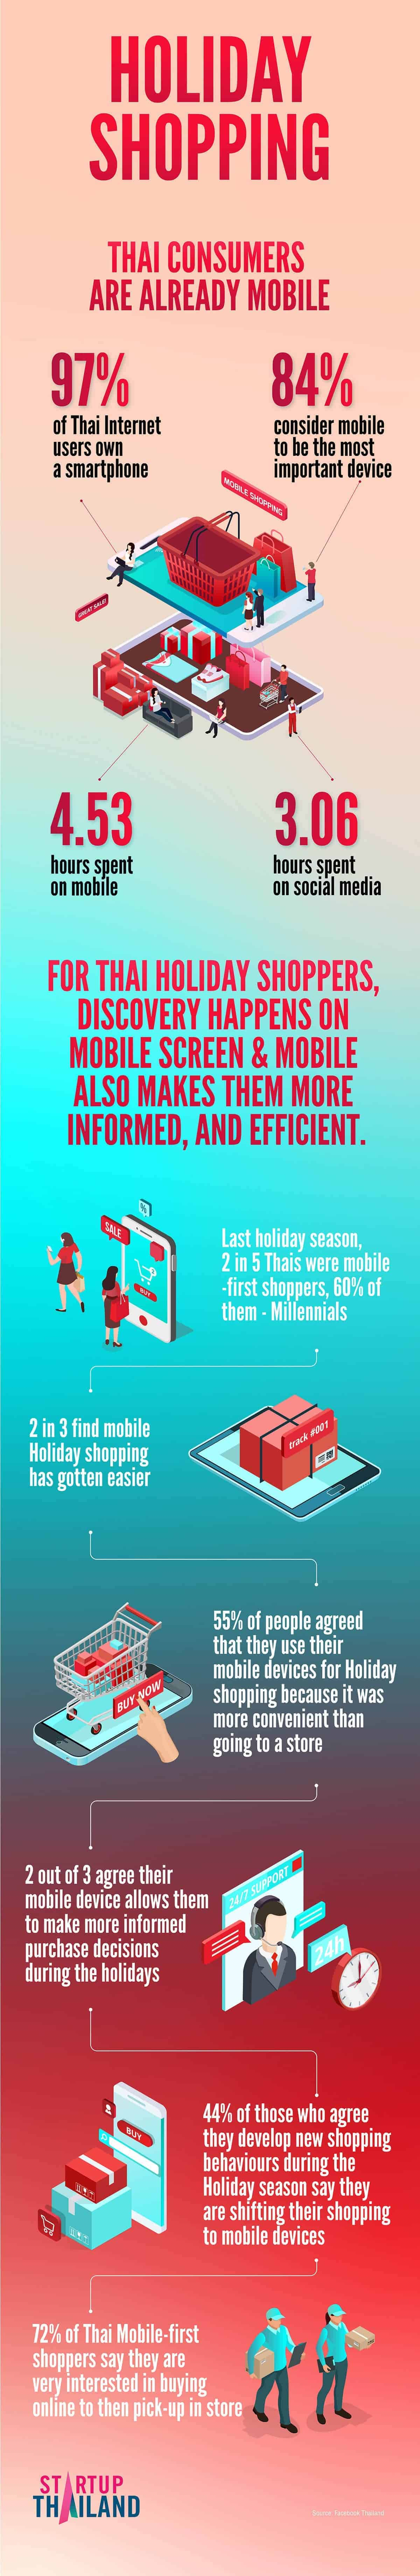 holiday shopping stats and trends